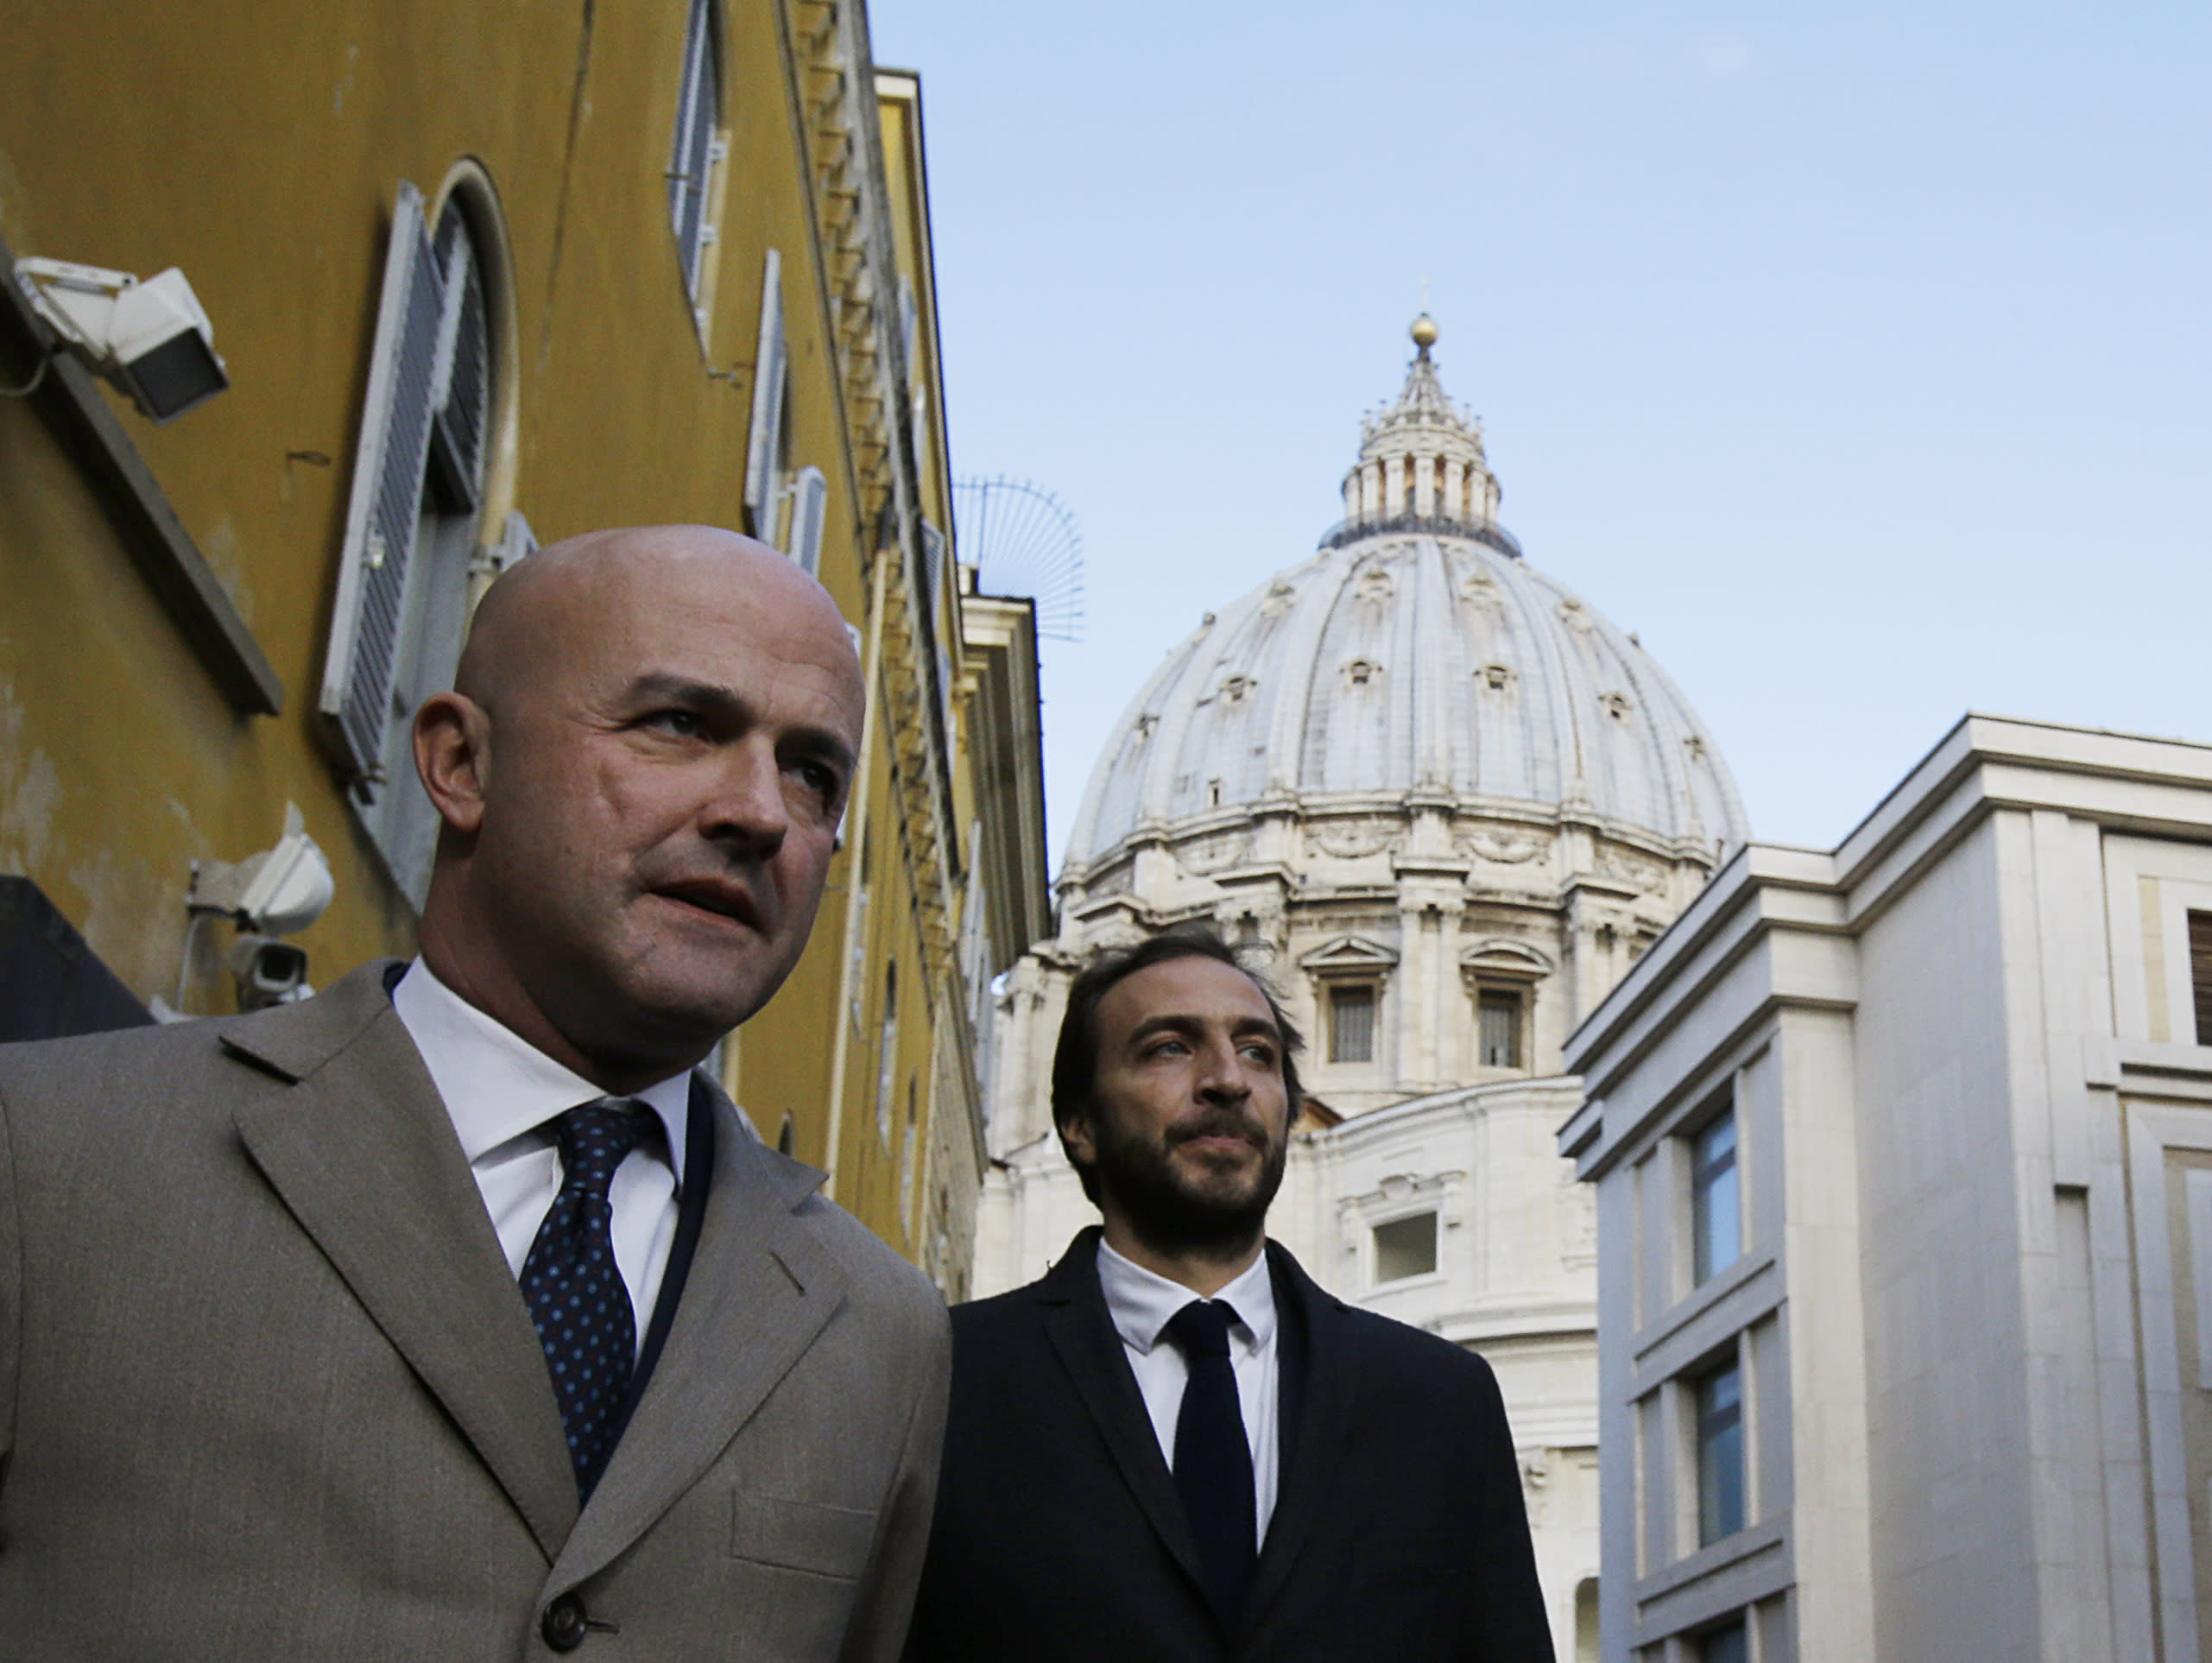 Vatican court rejects journalist's bid to drop leaks charges